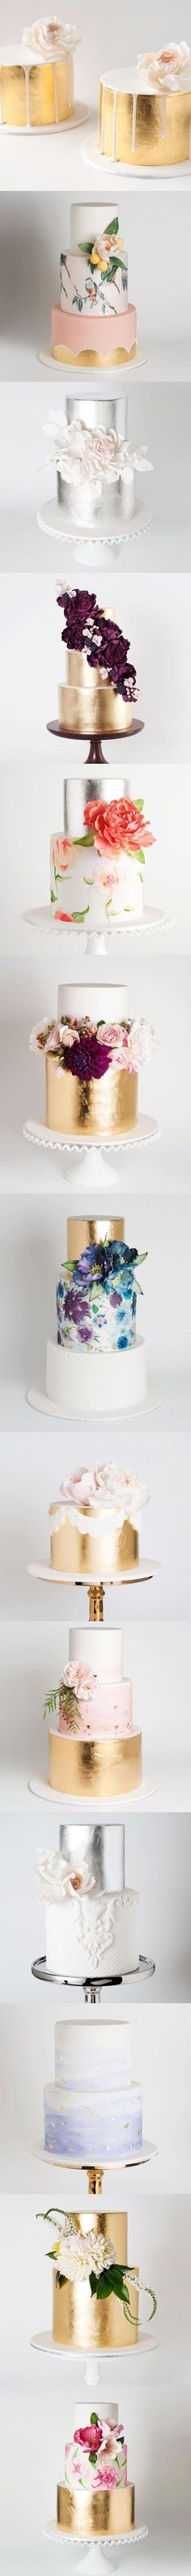 metallic cakes - my kind of wedding cakes! Bring on the gold :)...